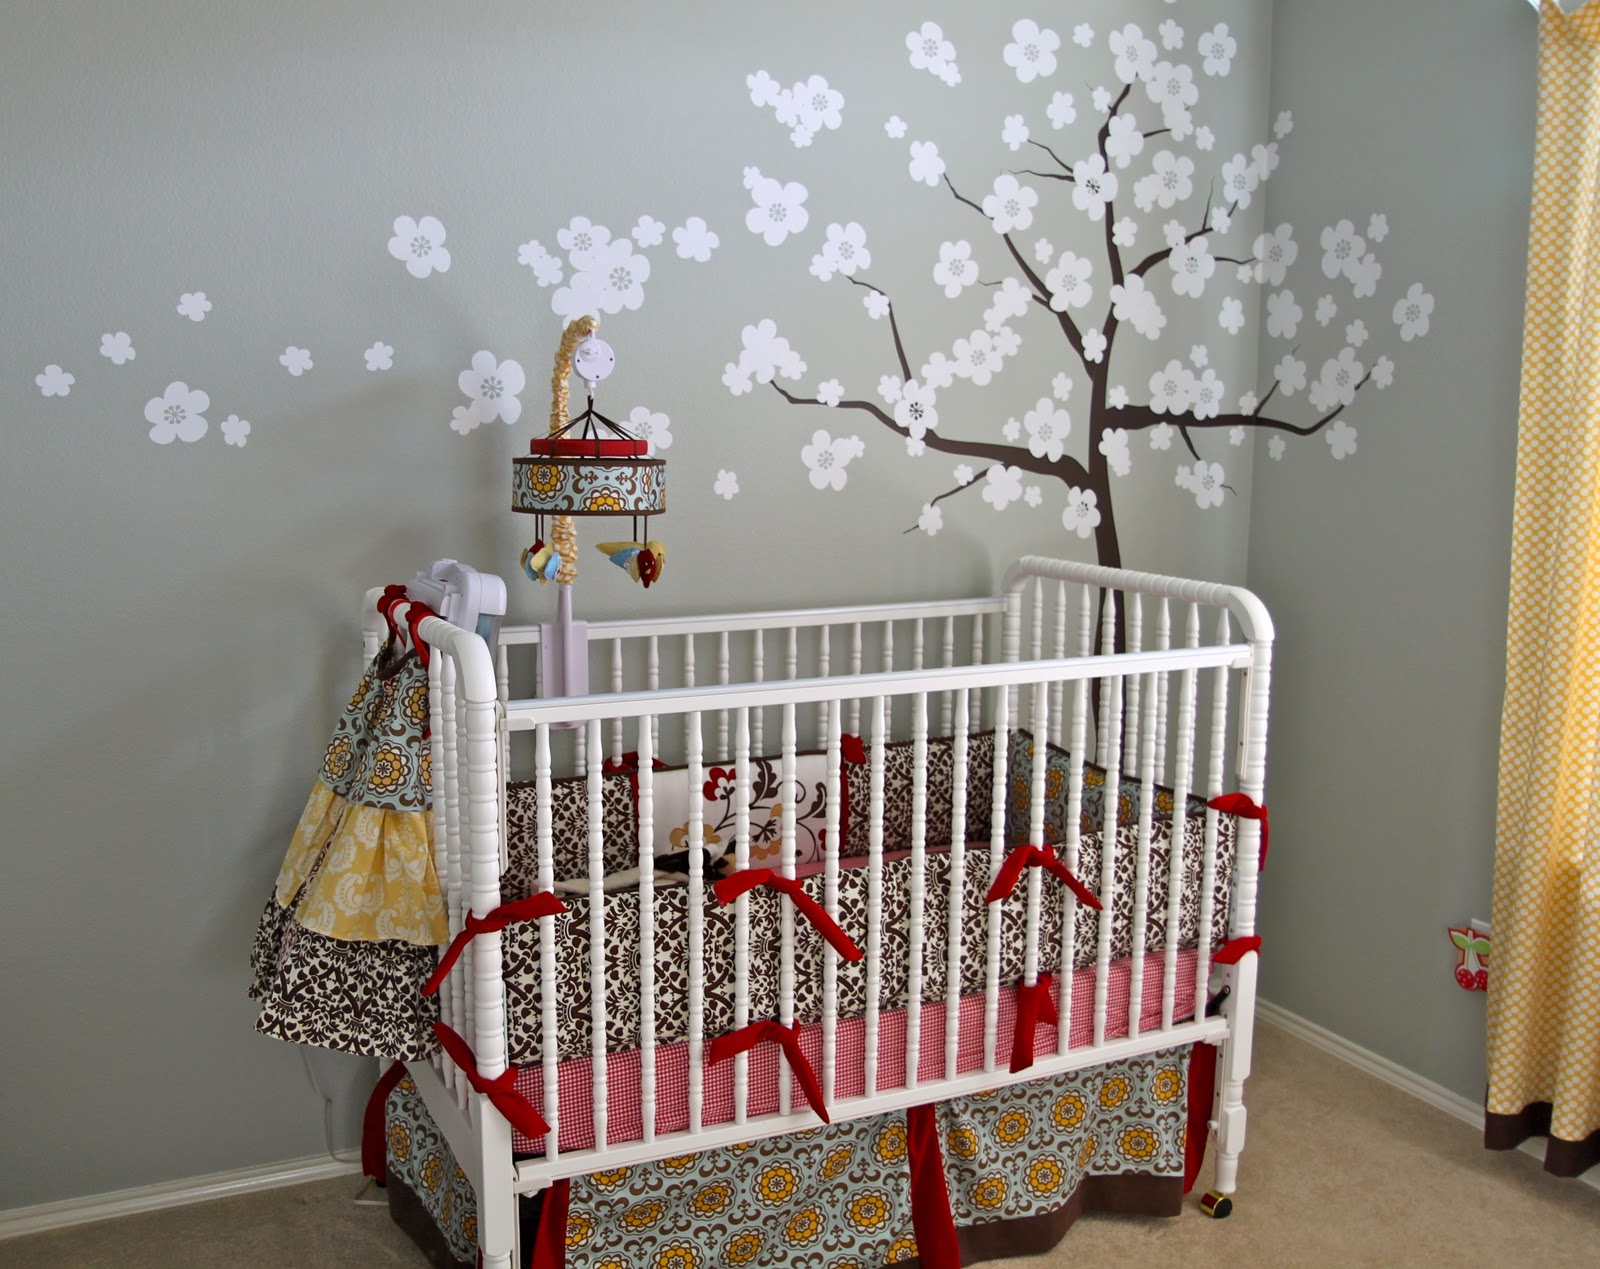 Baby nursery it 39 s quirky and so cute design dazzle - Baby nursey ideas ...